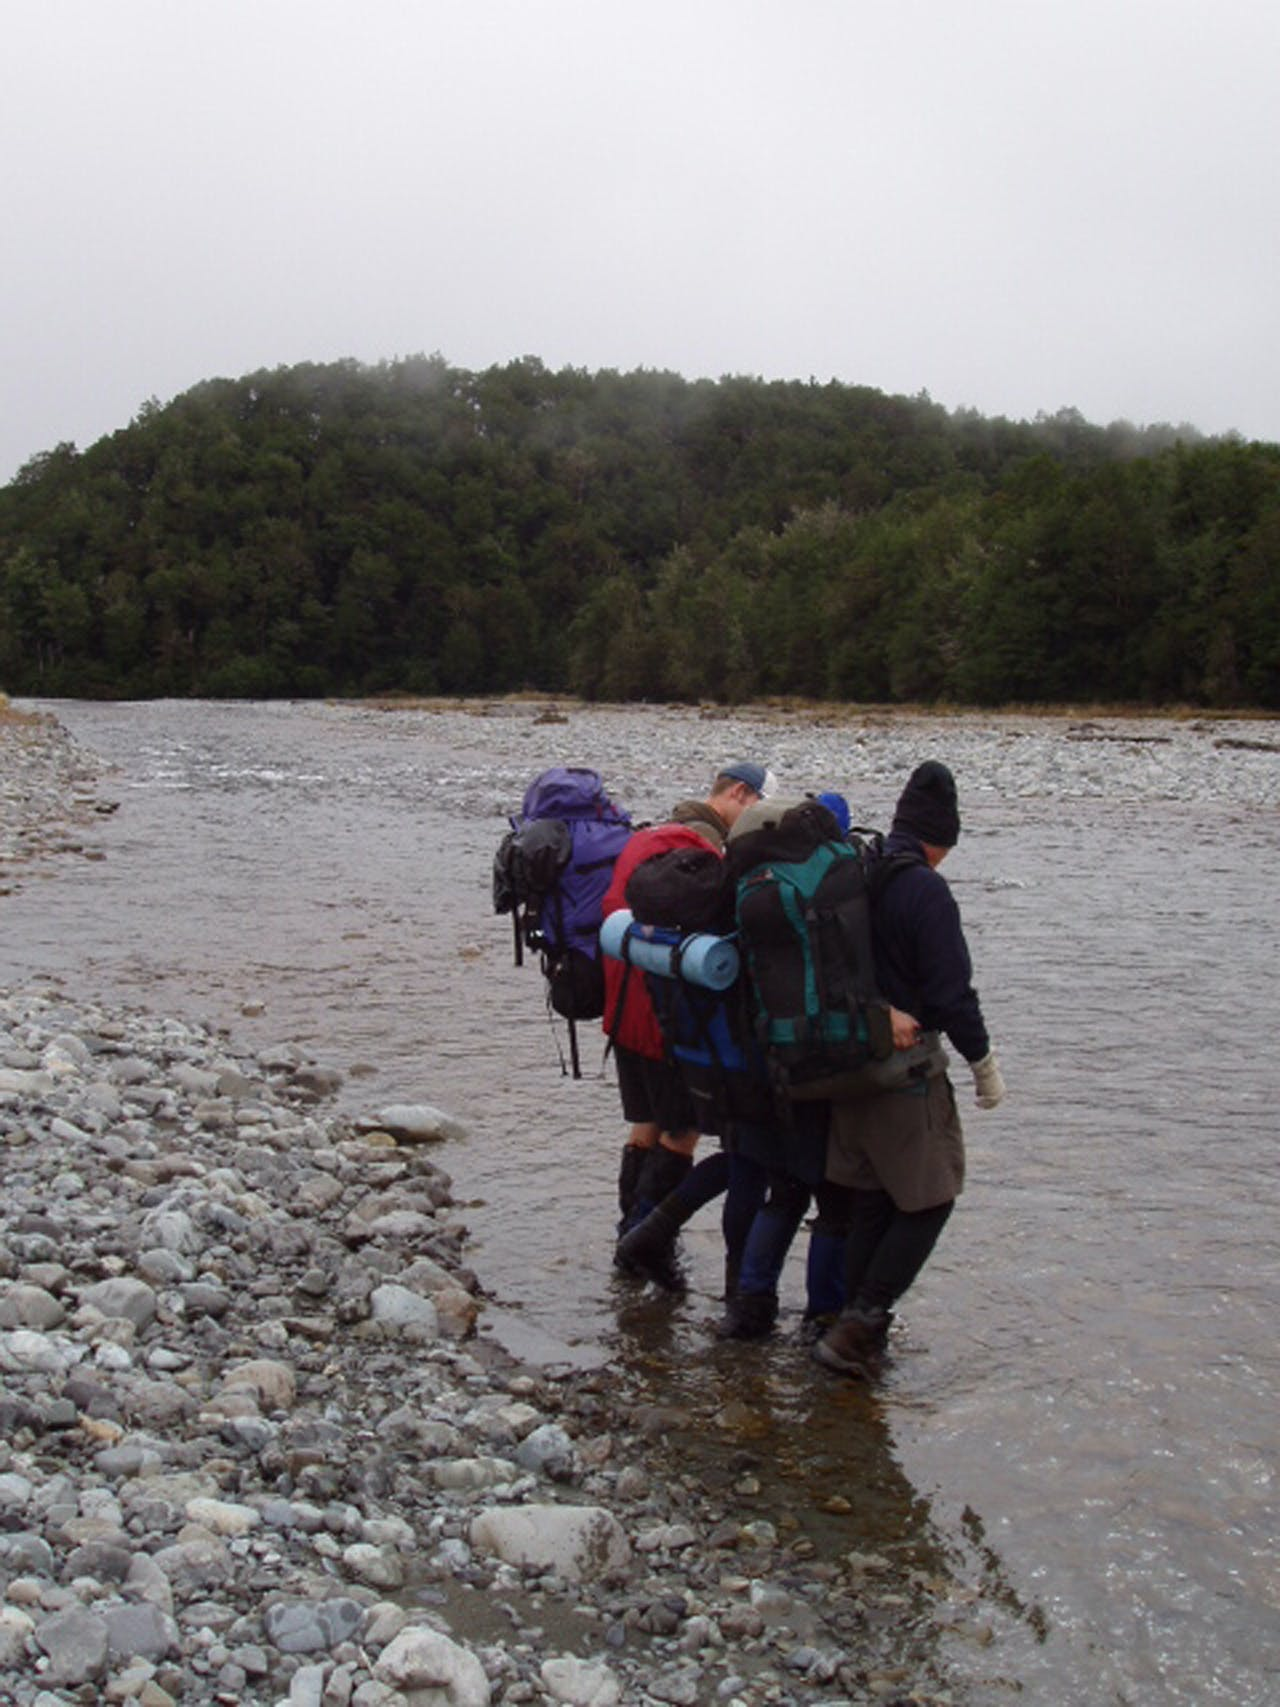 Trampers demonstrate the mutual support method for crossing rivers